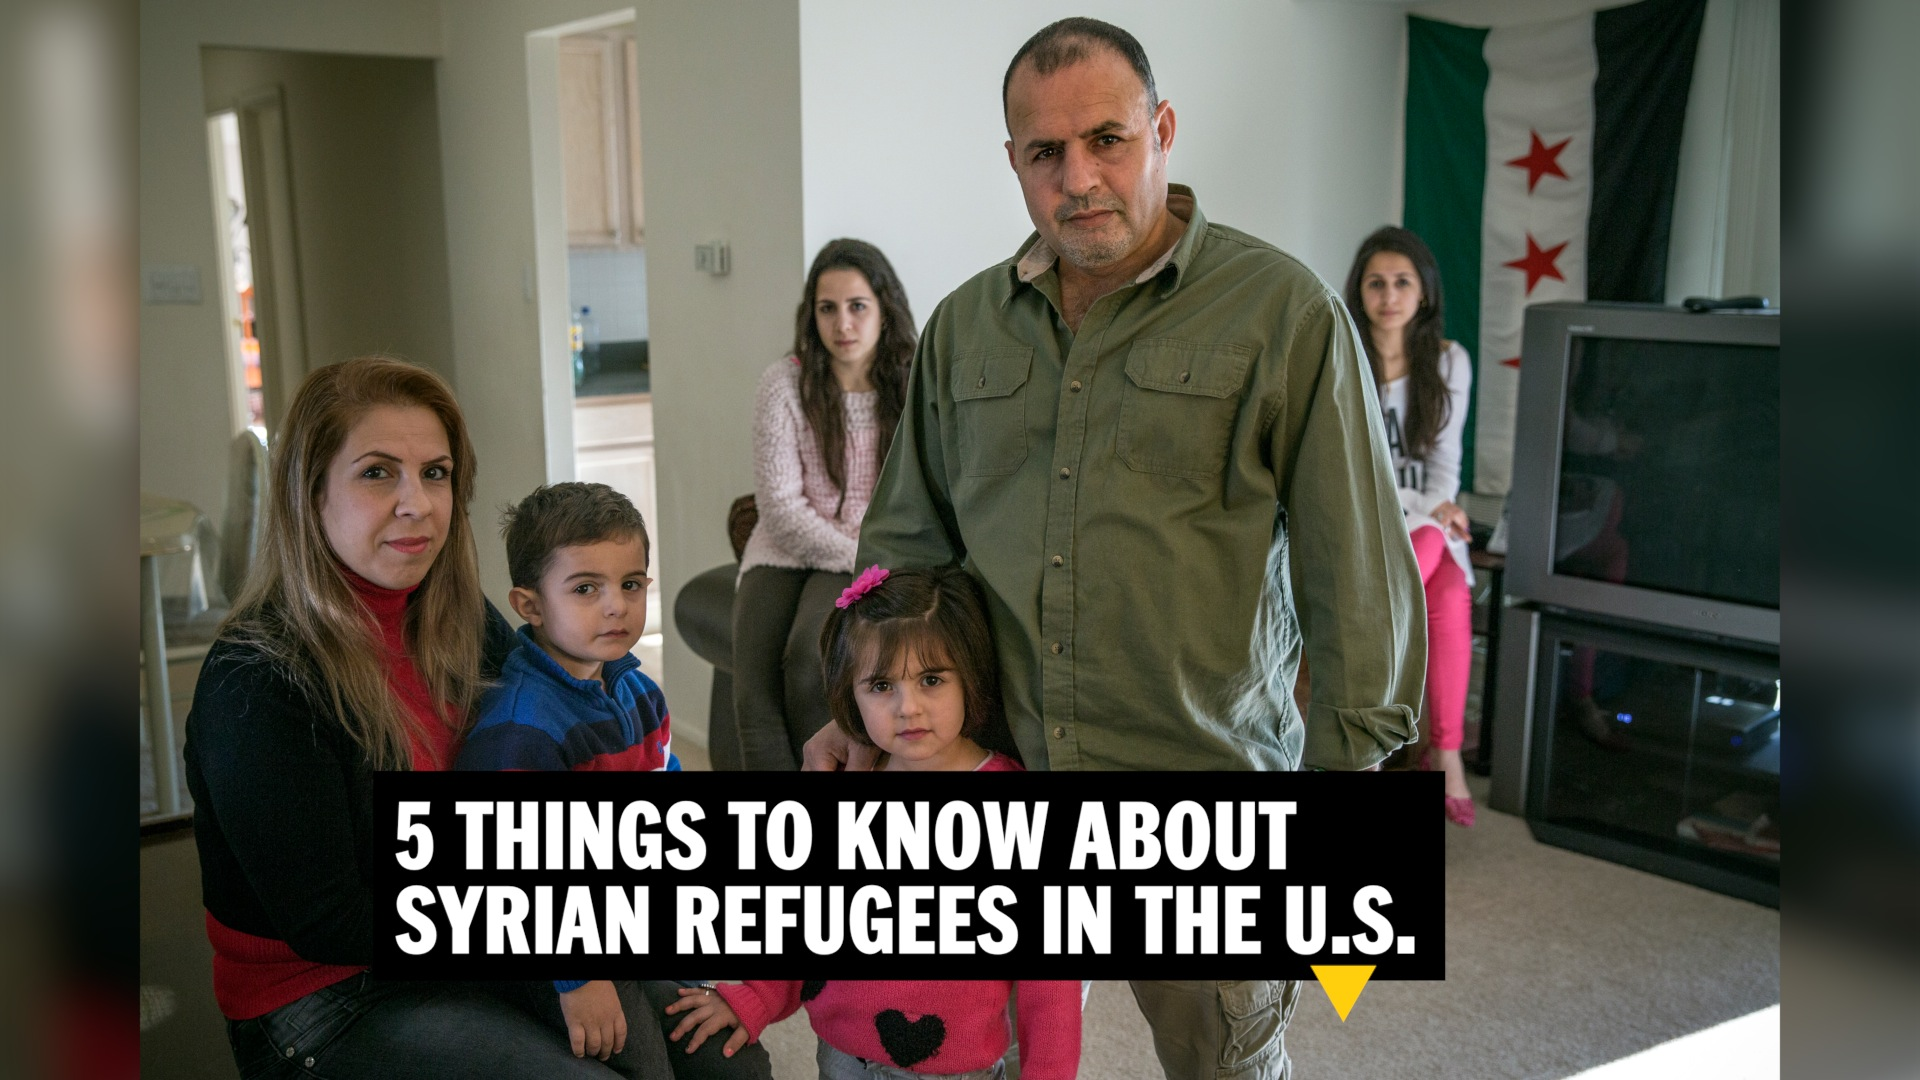 Feds to states: No, you cannot ban Syrian refugees